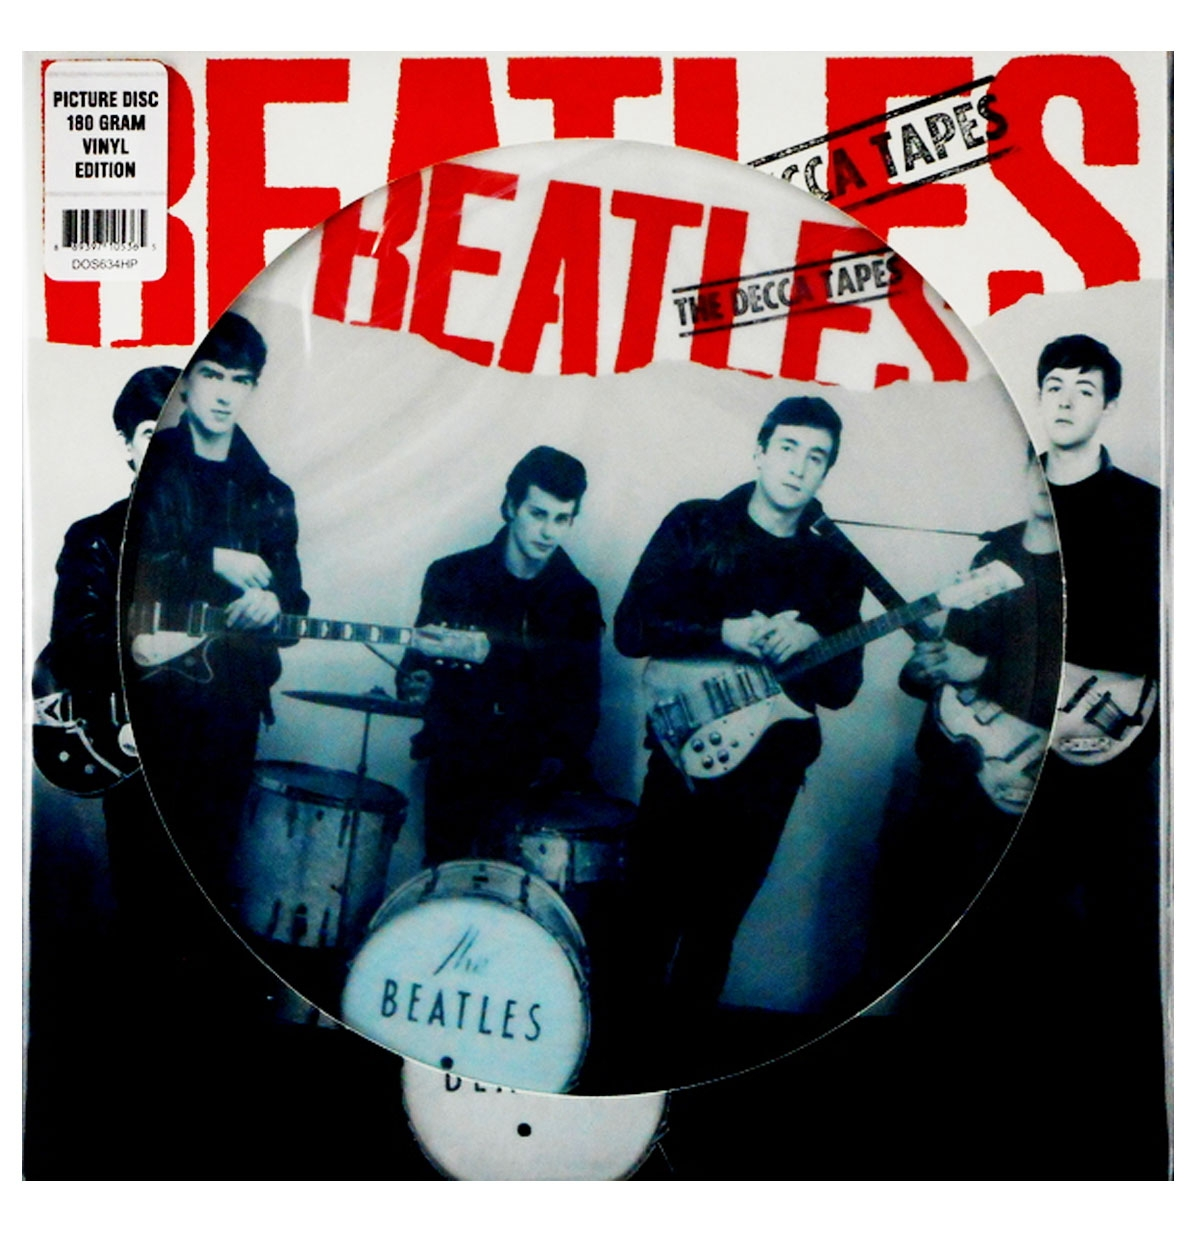 The Beatles - The Decca Tapes LP - Gelimiteerde Oplage Picture Disc